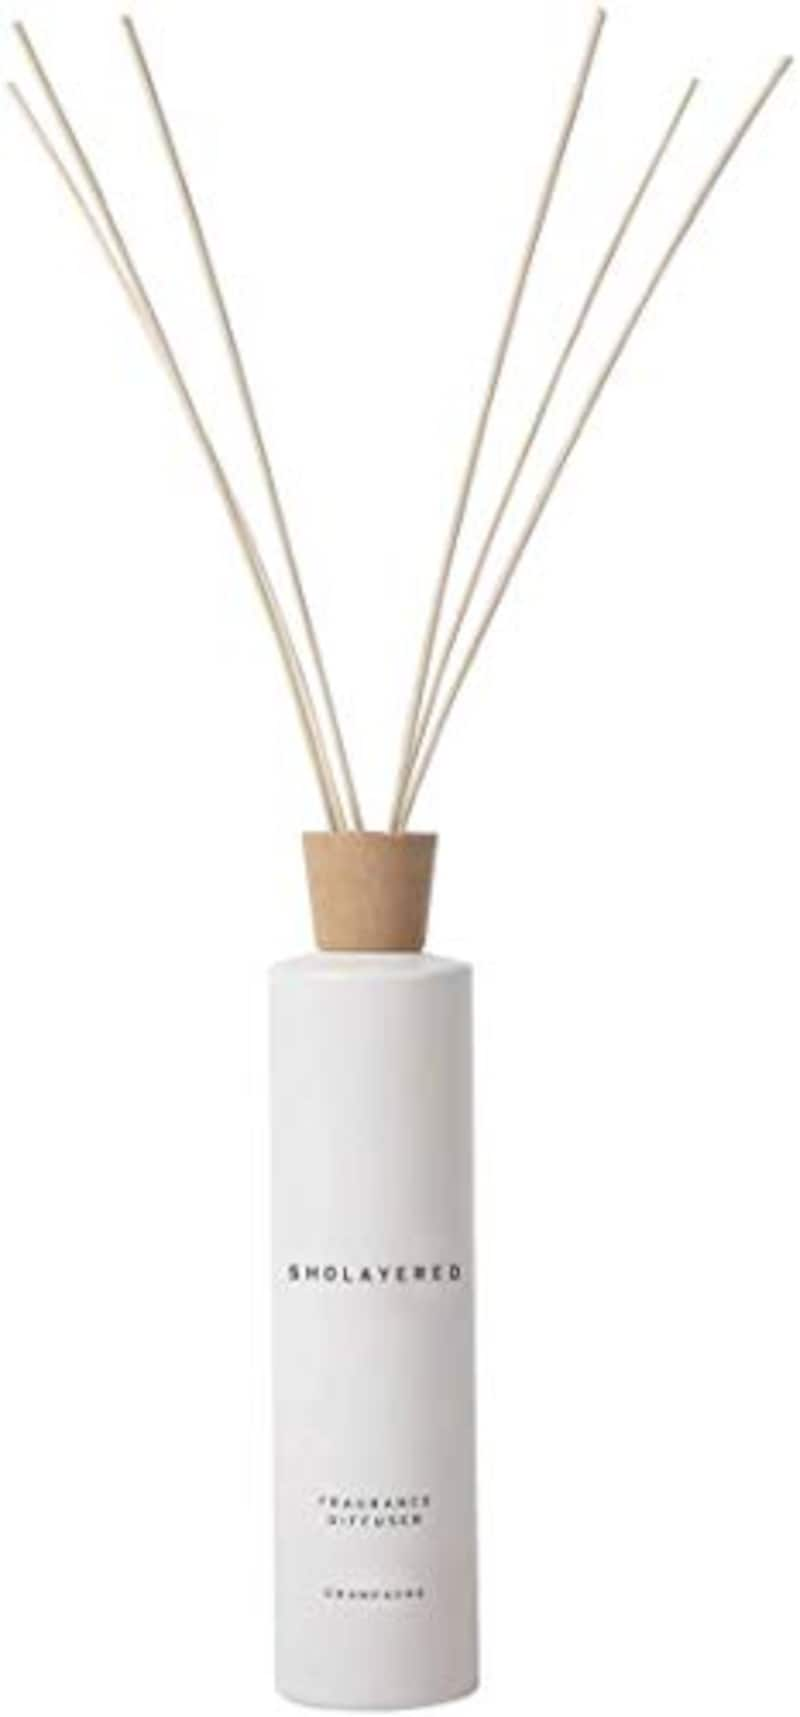 LAYERED FRAGRANCE,ROOM DIFFUSER CHAMPAGNE 500ml